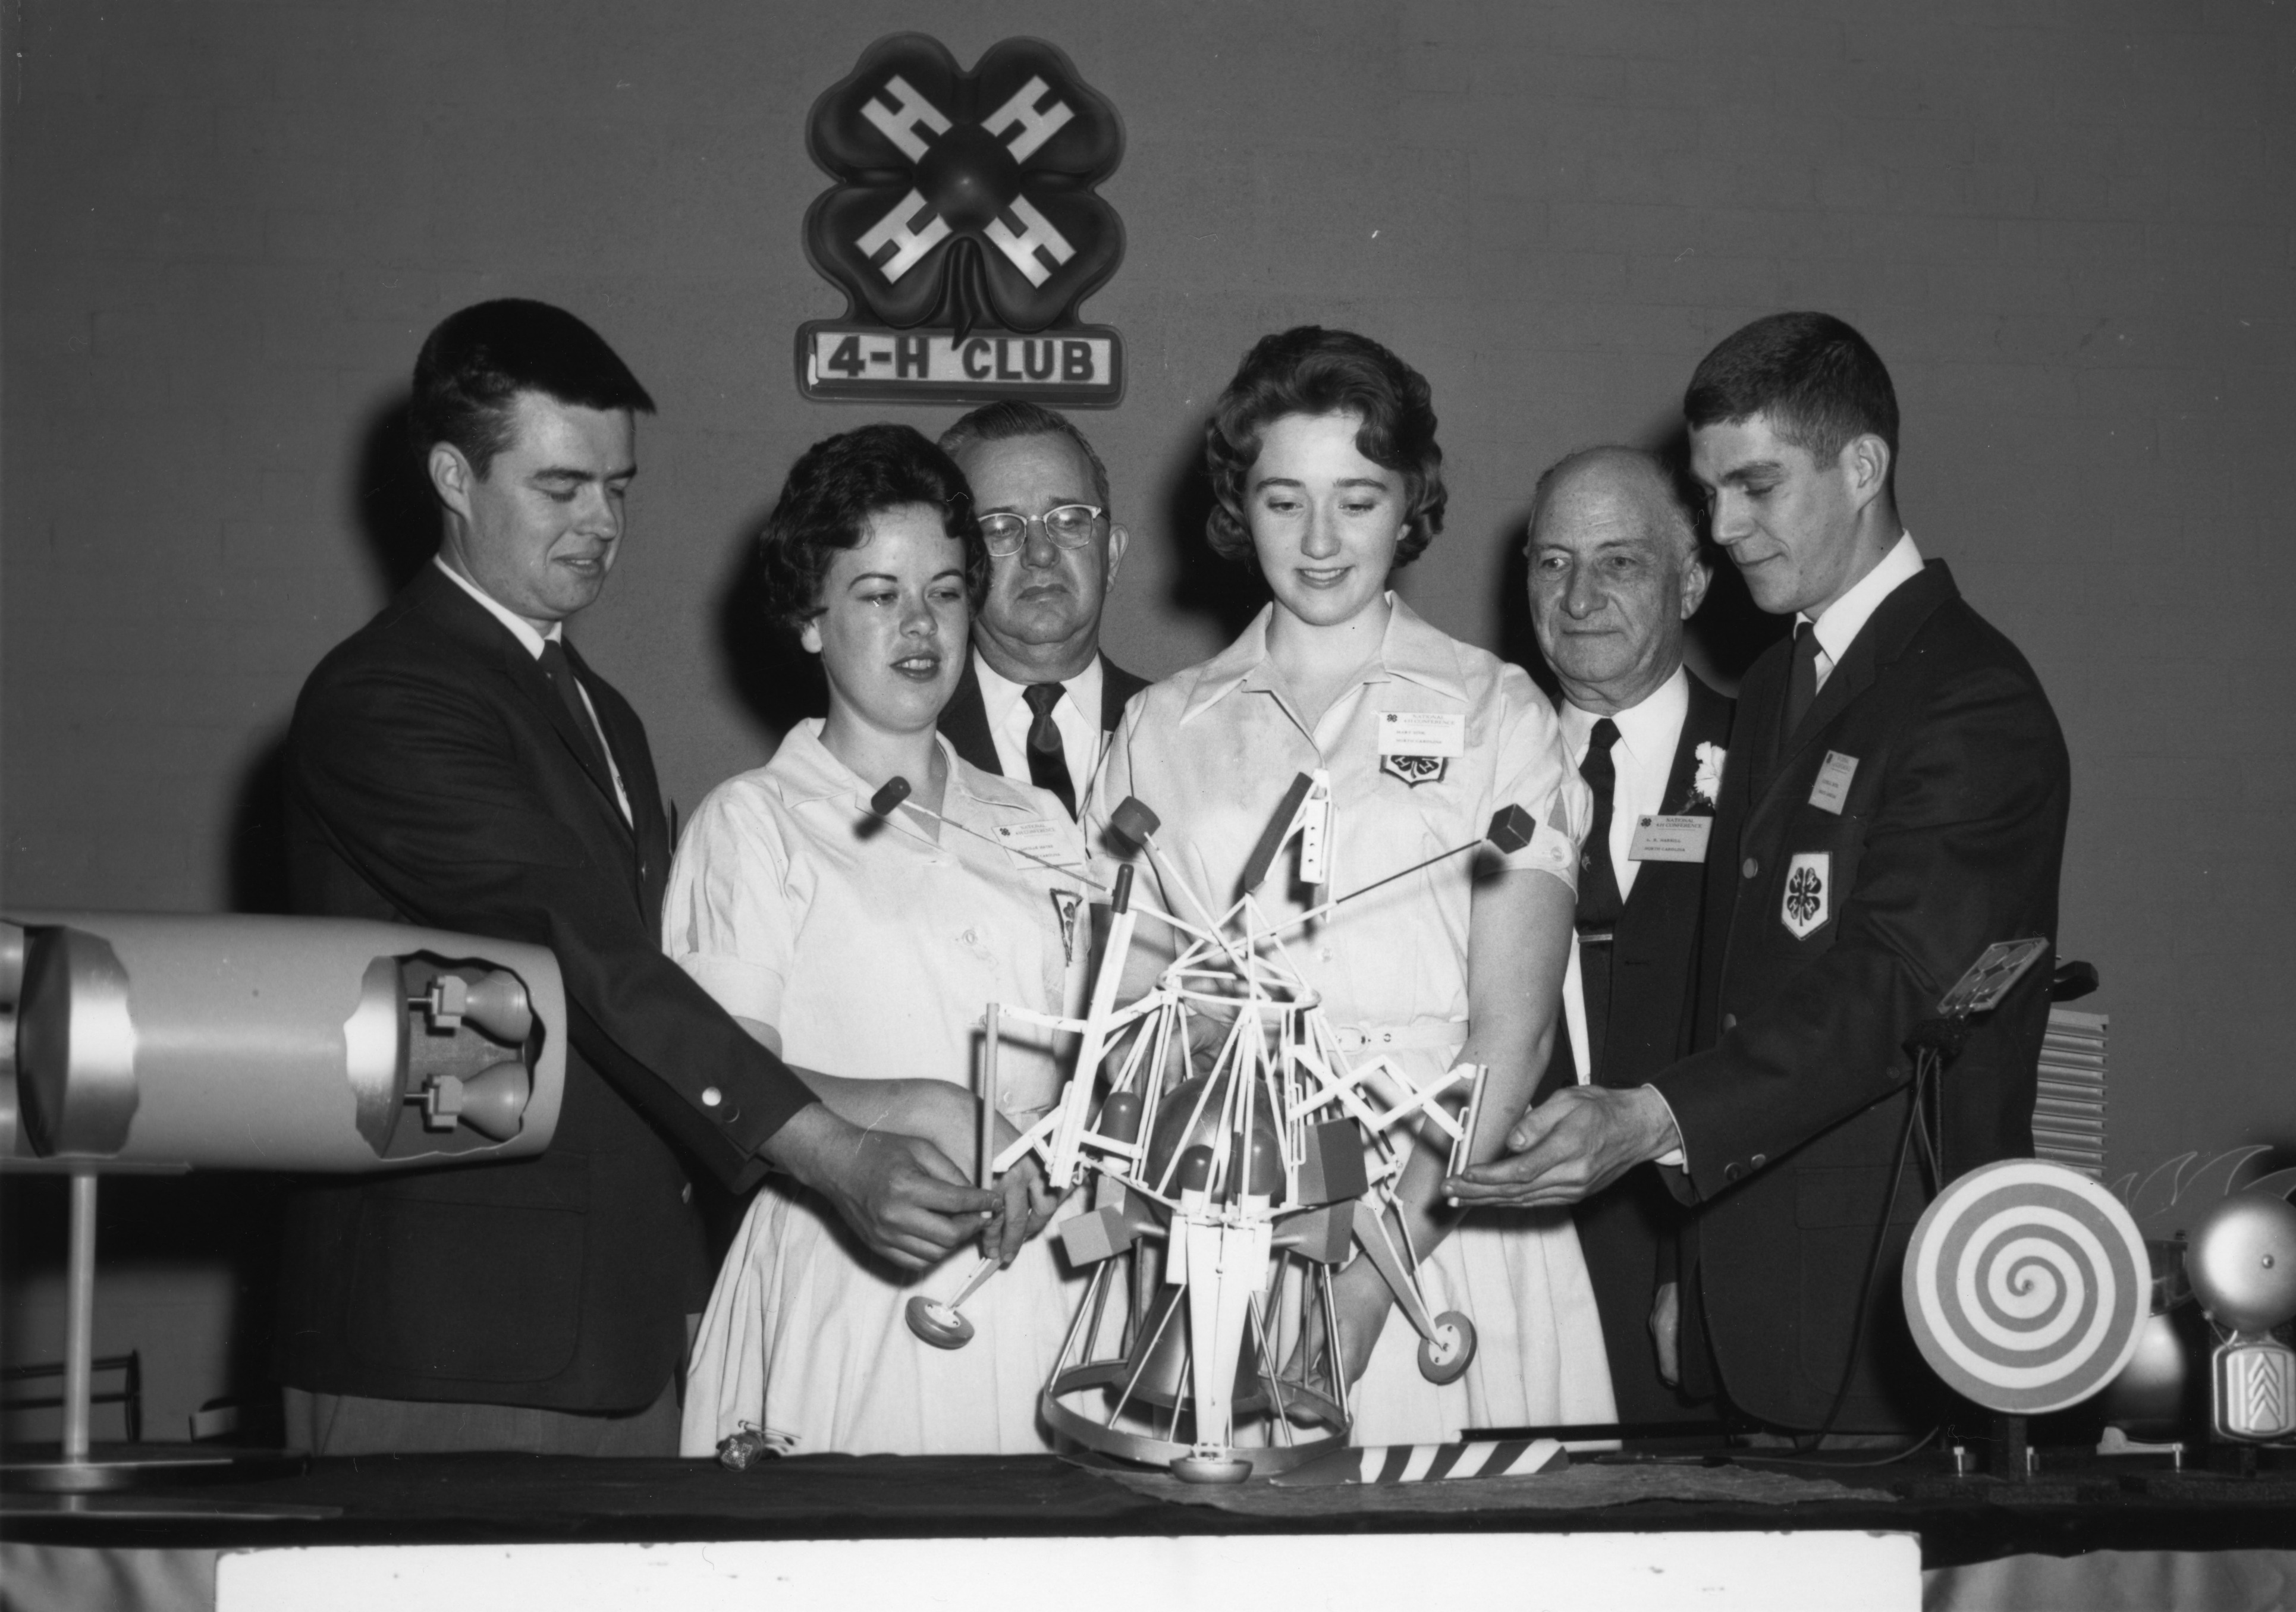 4-H club members examining model of a satellite. L. R. Harrill, second from right